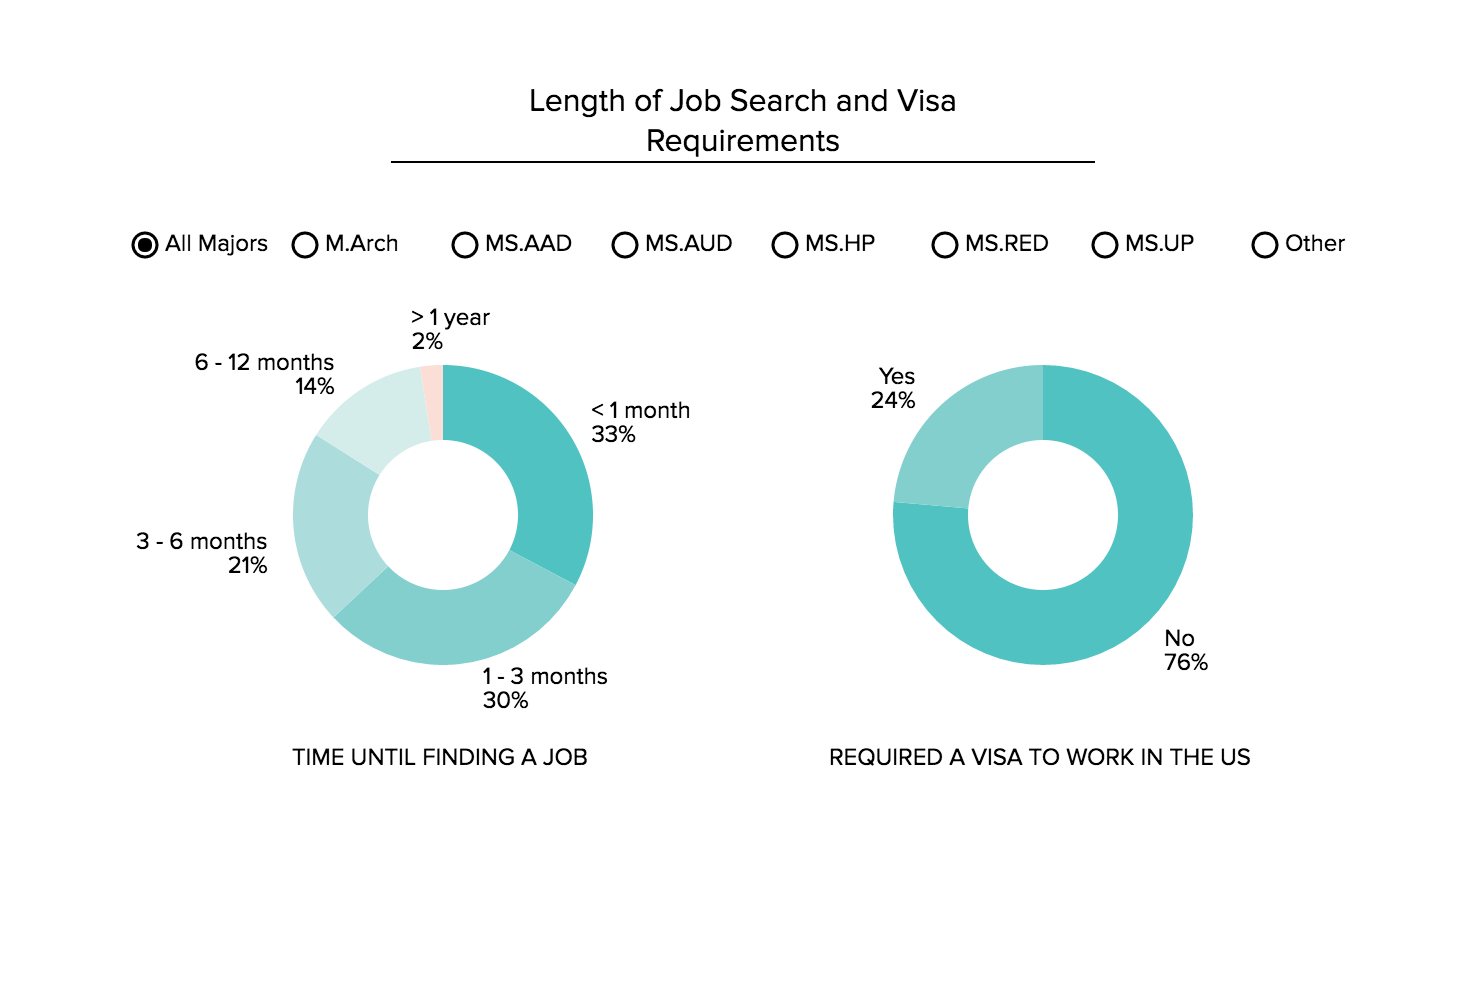 Length of job search